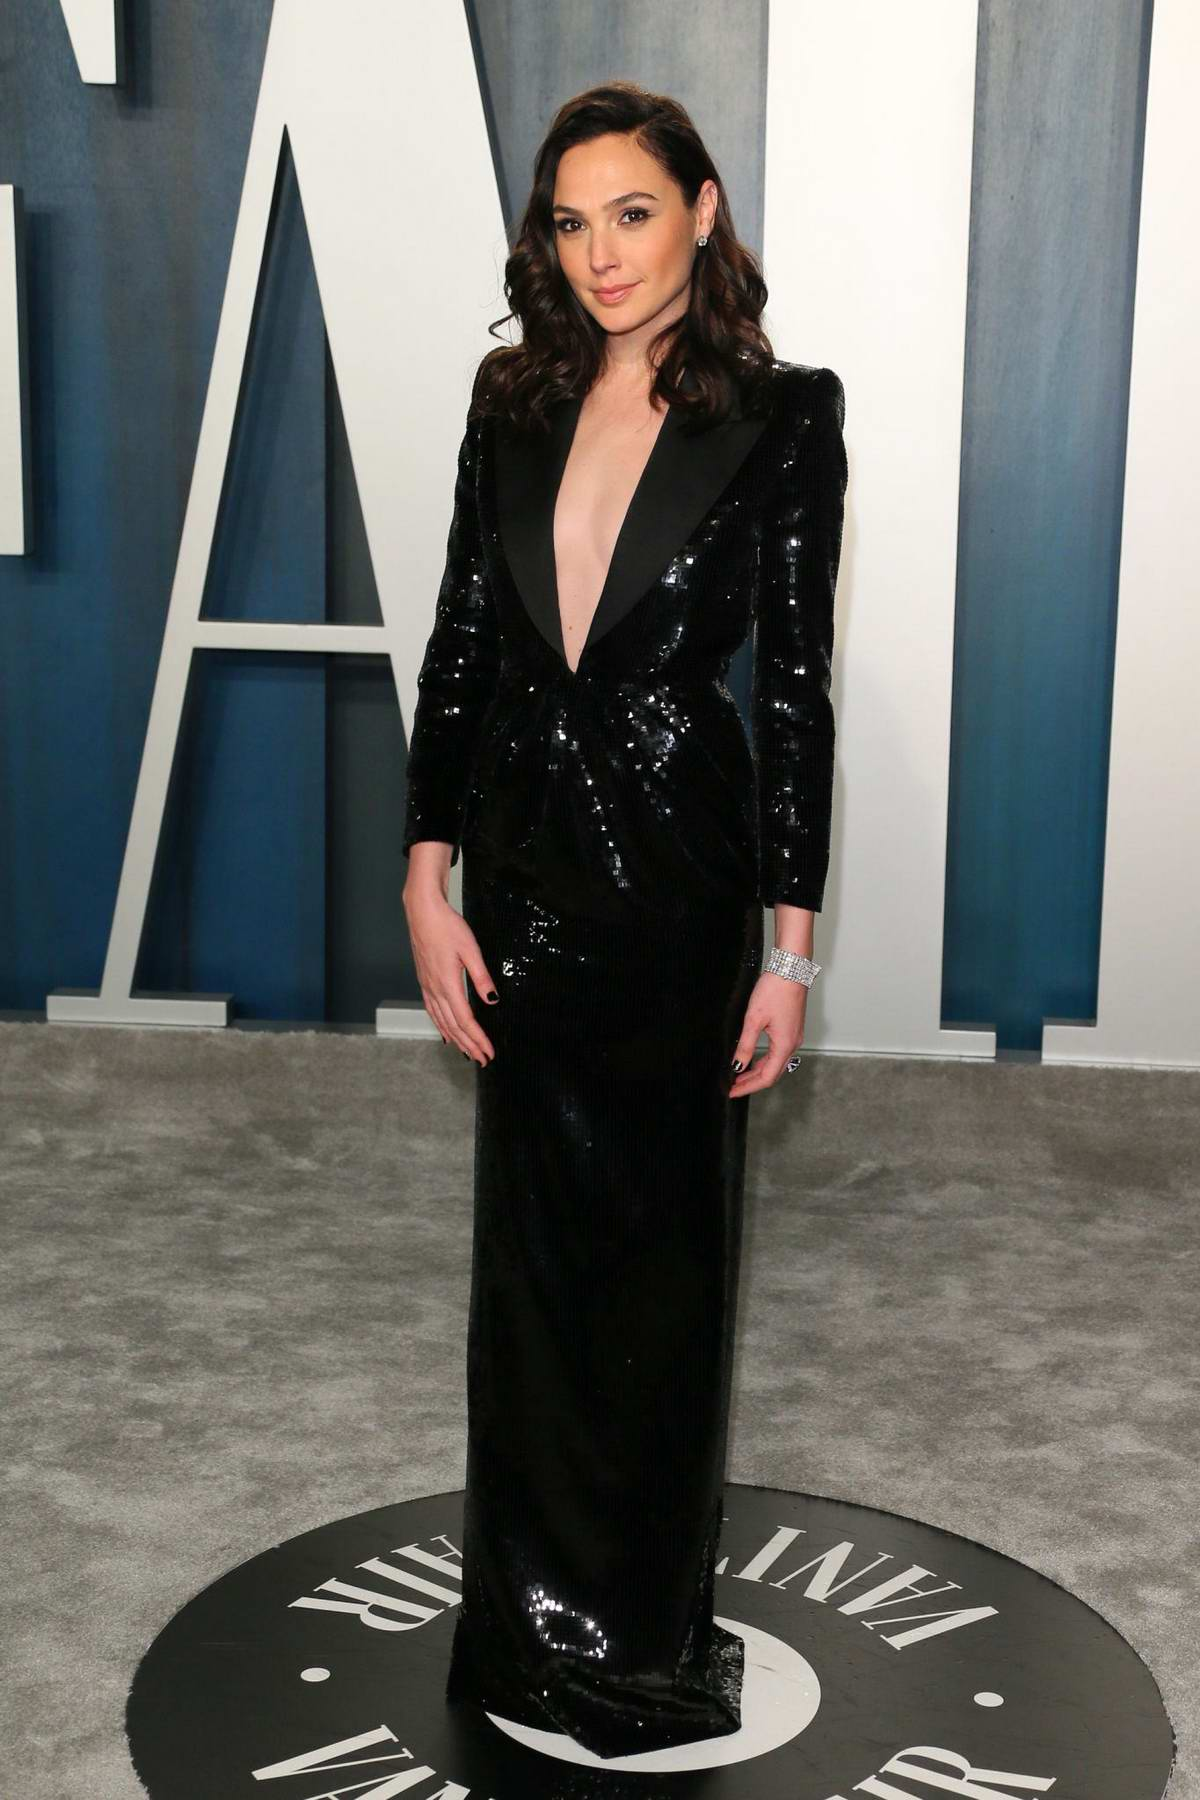 Gal Gadot attends the 2020 Vanity Fair Oscar Party at Wallis Annenberg Center for the Performing Arts in Los Angeles